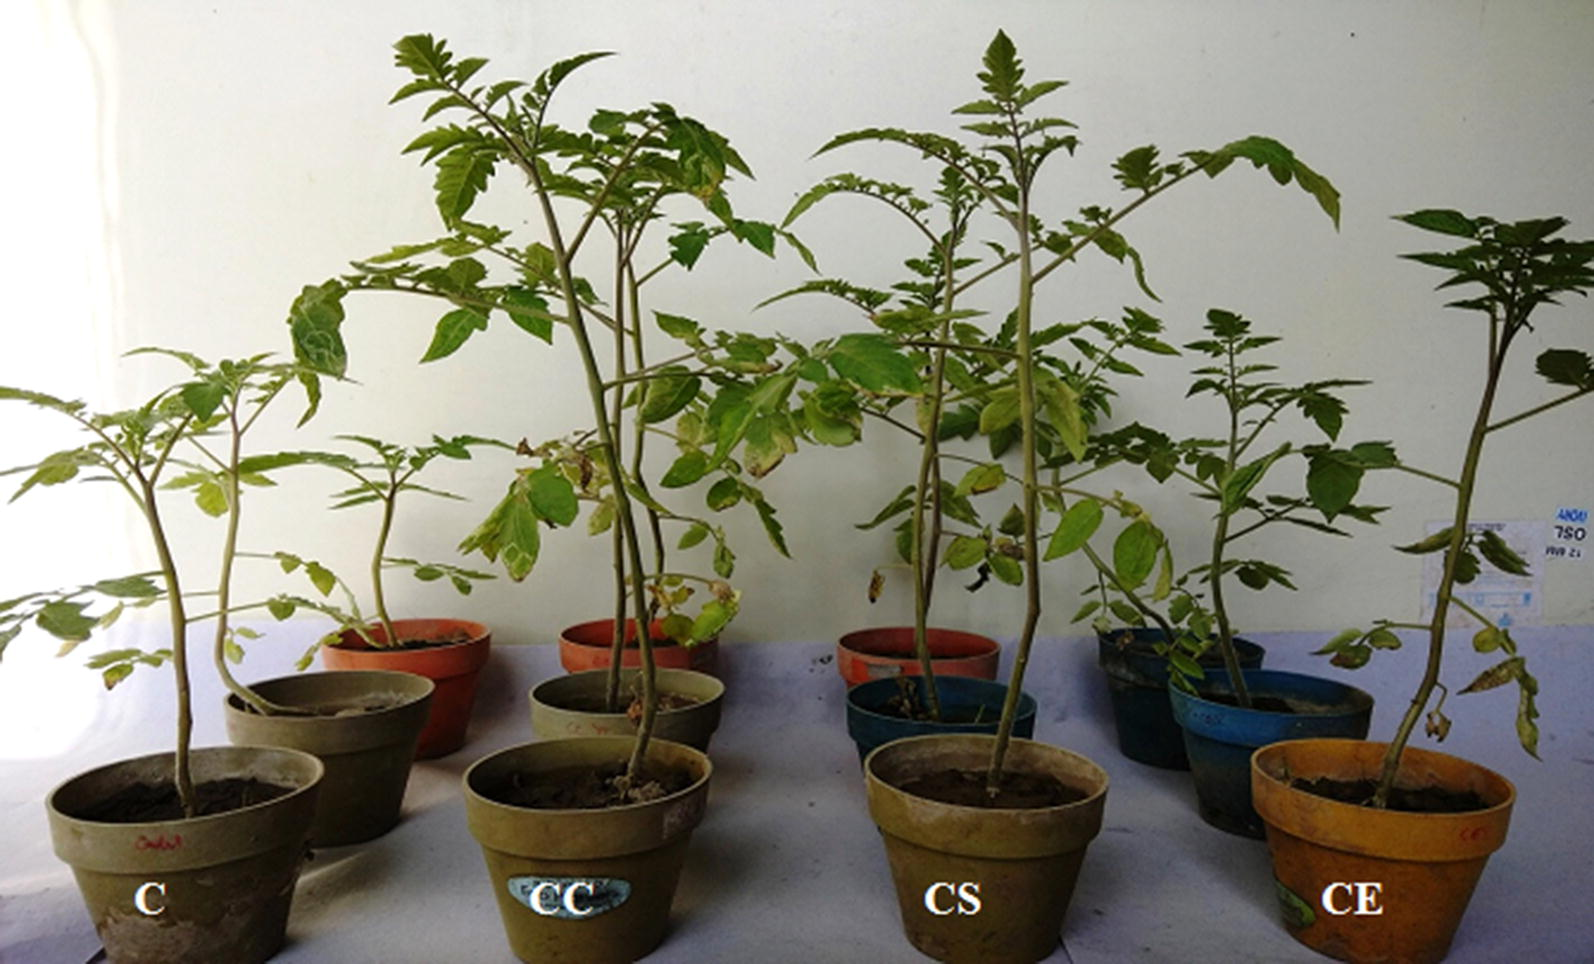 Biocontrol and plant growth promoting potential of